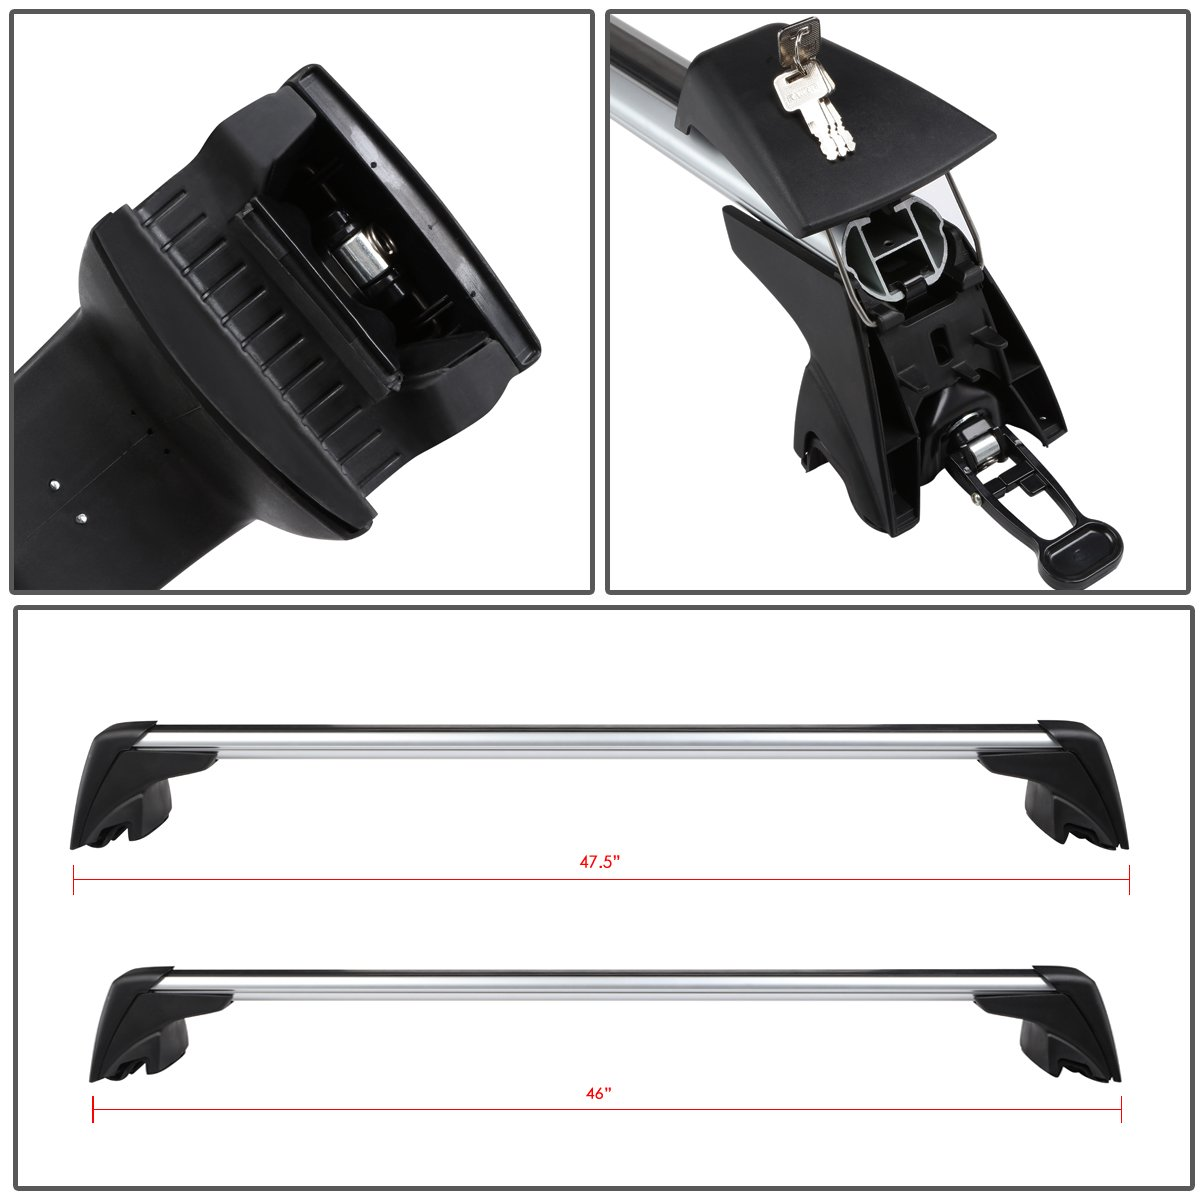 for 09-15 BMW X1 DNA MOTORING PT-ZTL-8044 Pair OE Roof Rail Cross Bar with Lock Key